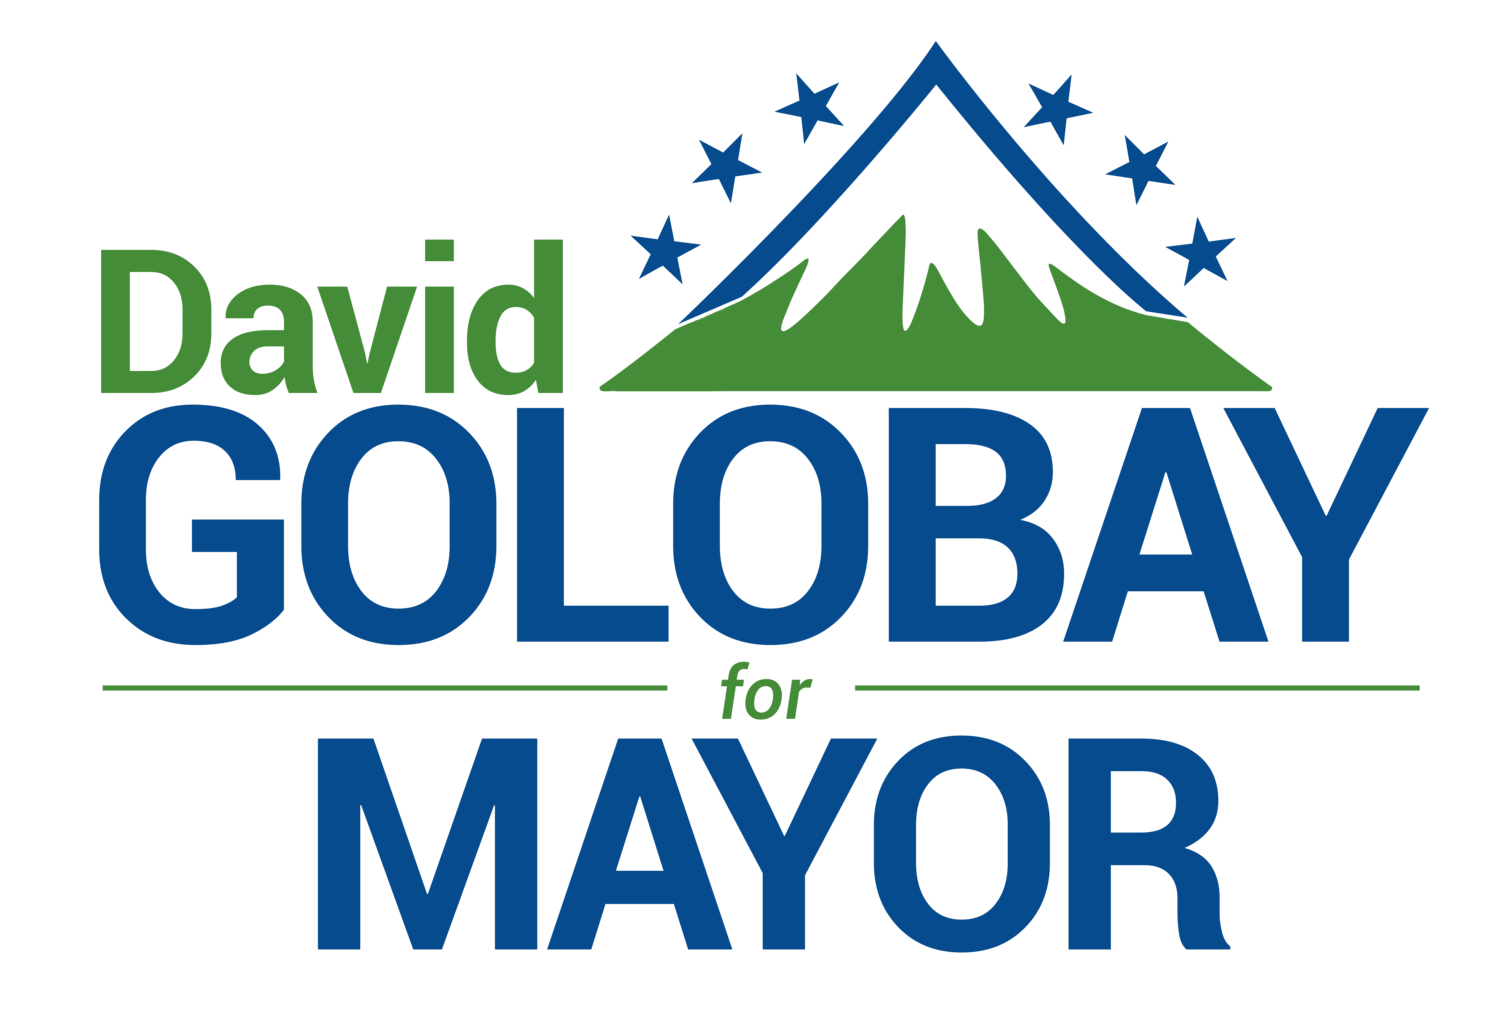 David Golobay for Mayor